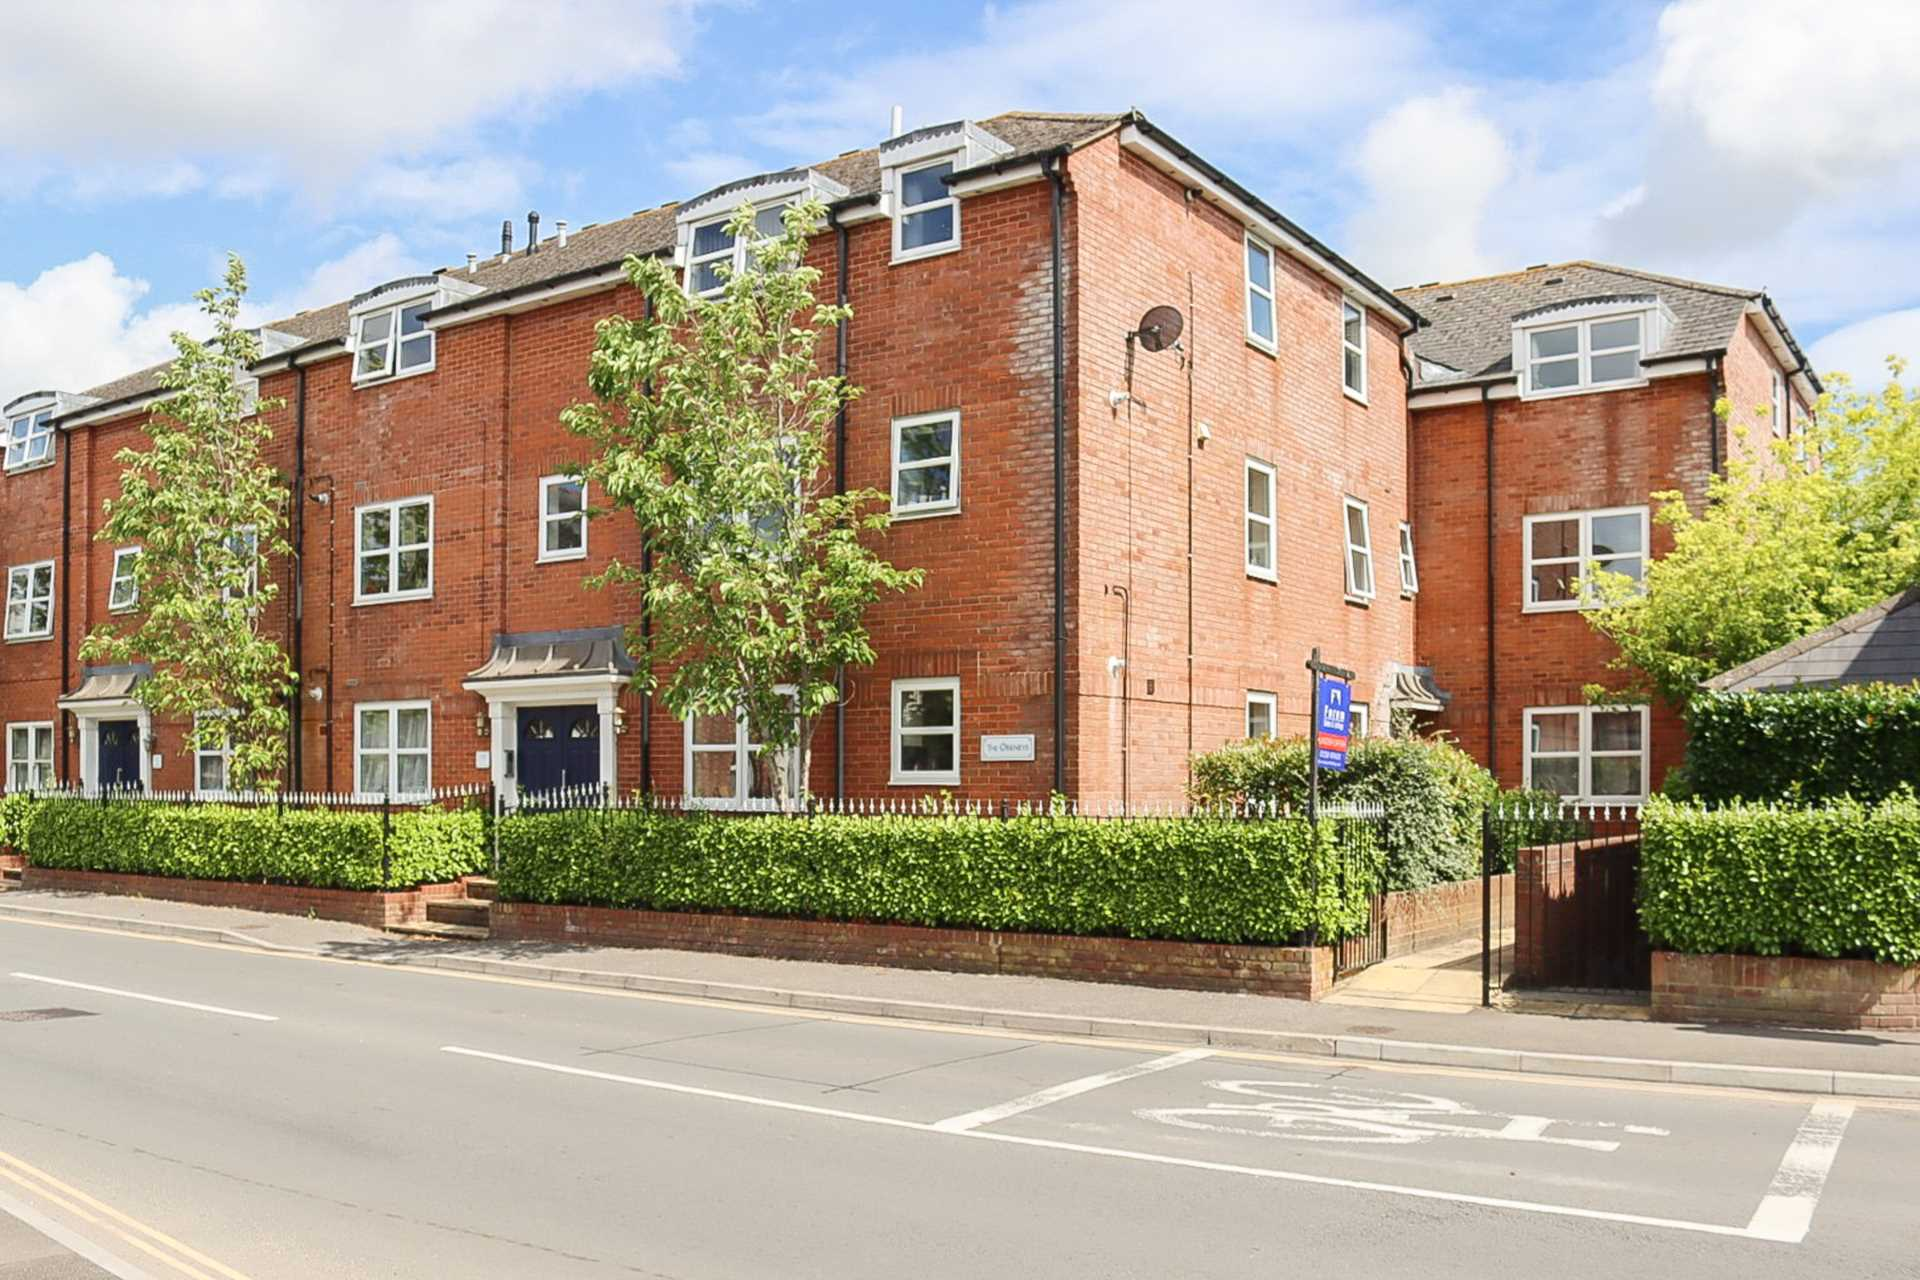 2 bed flat for sale in The Orkneys, Blandford Forum, Blandford Forum - Property Image 1